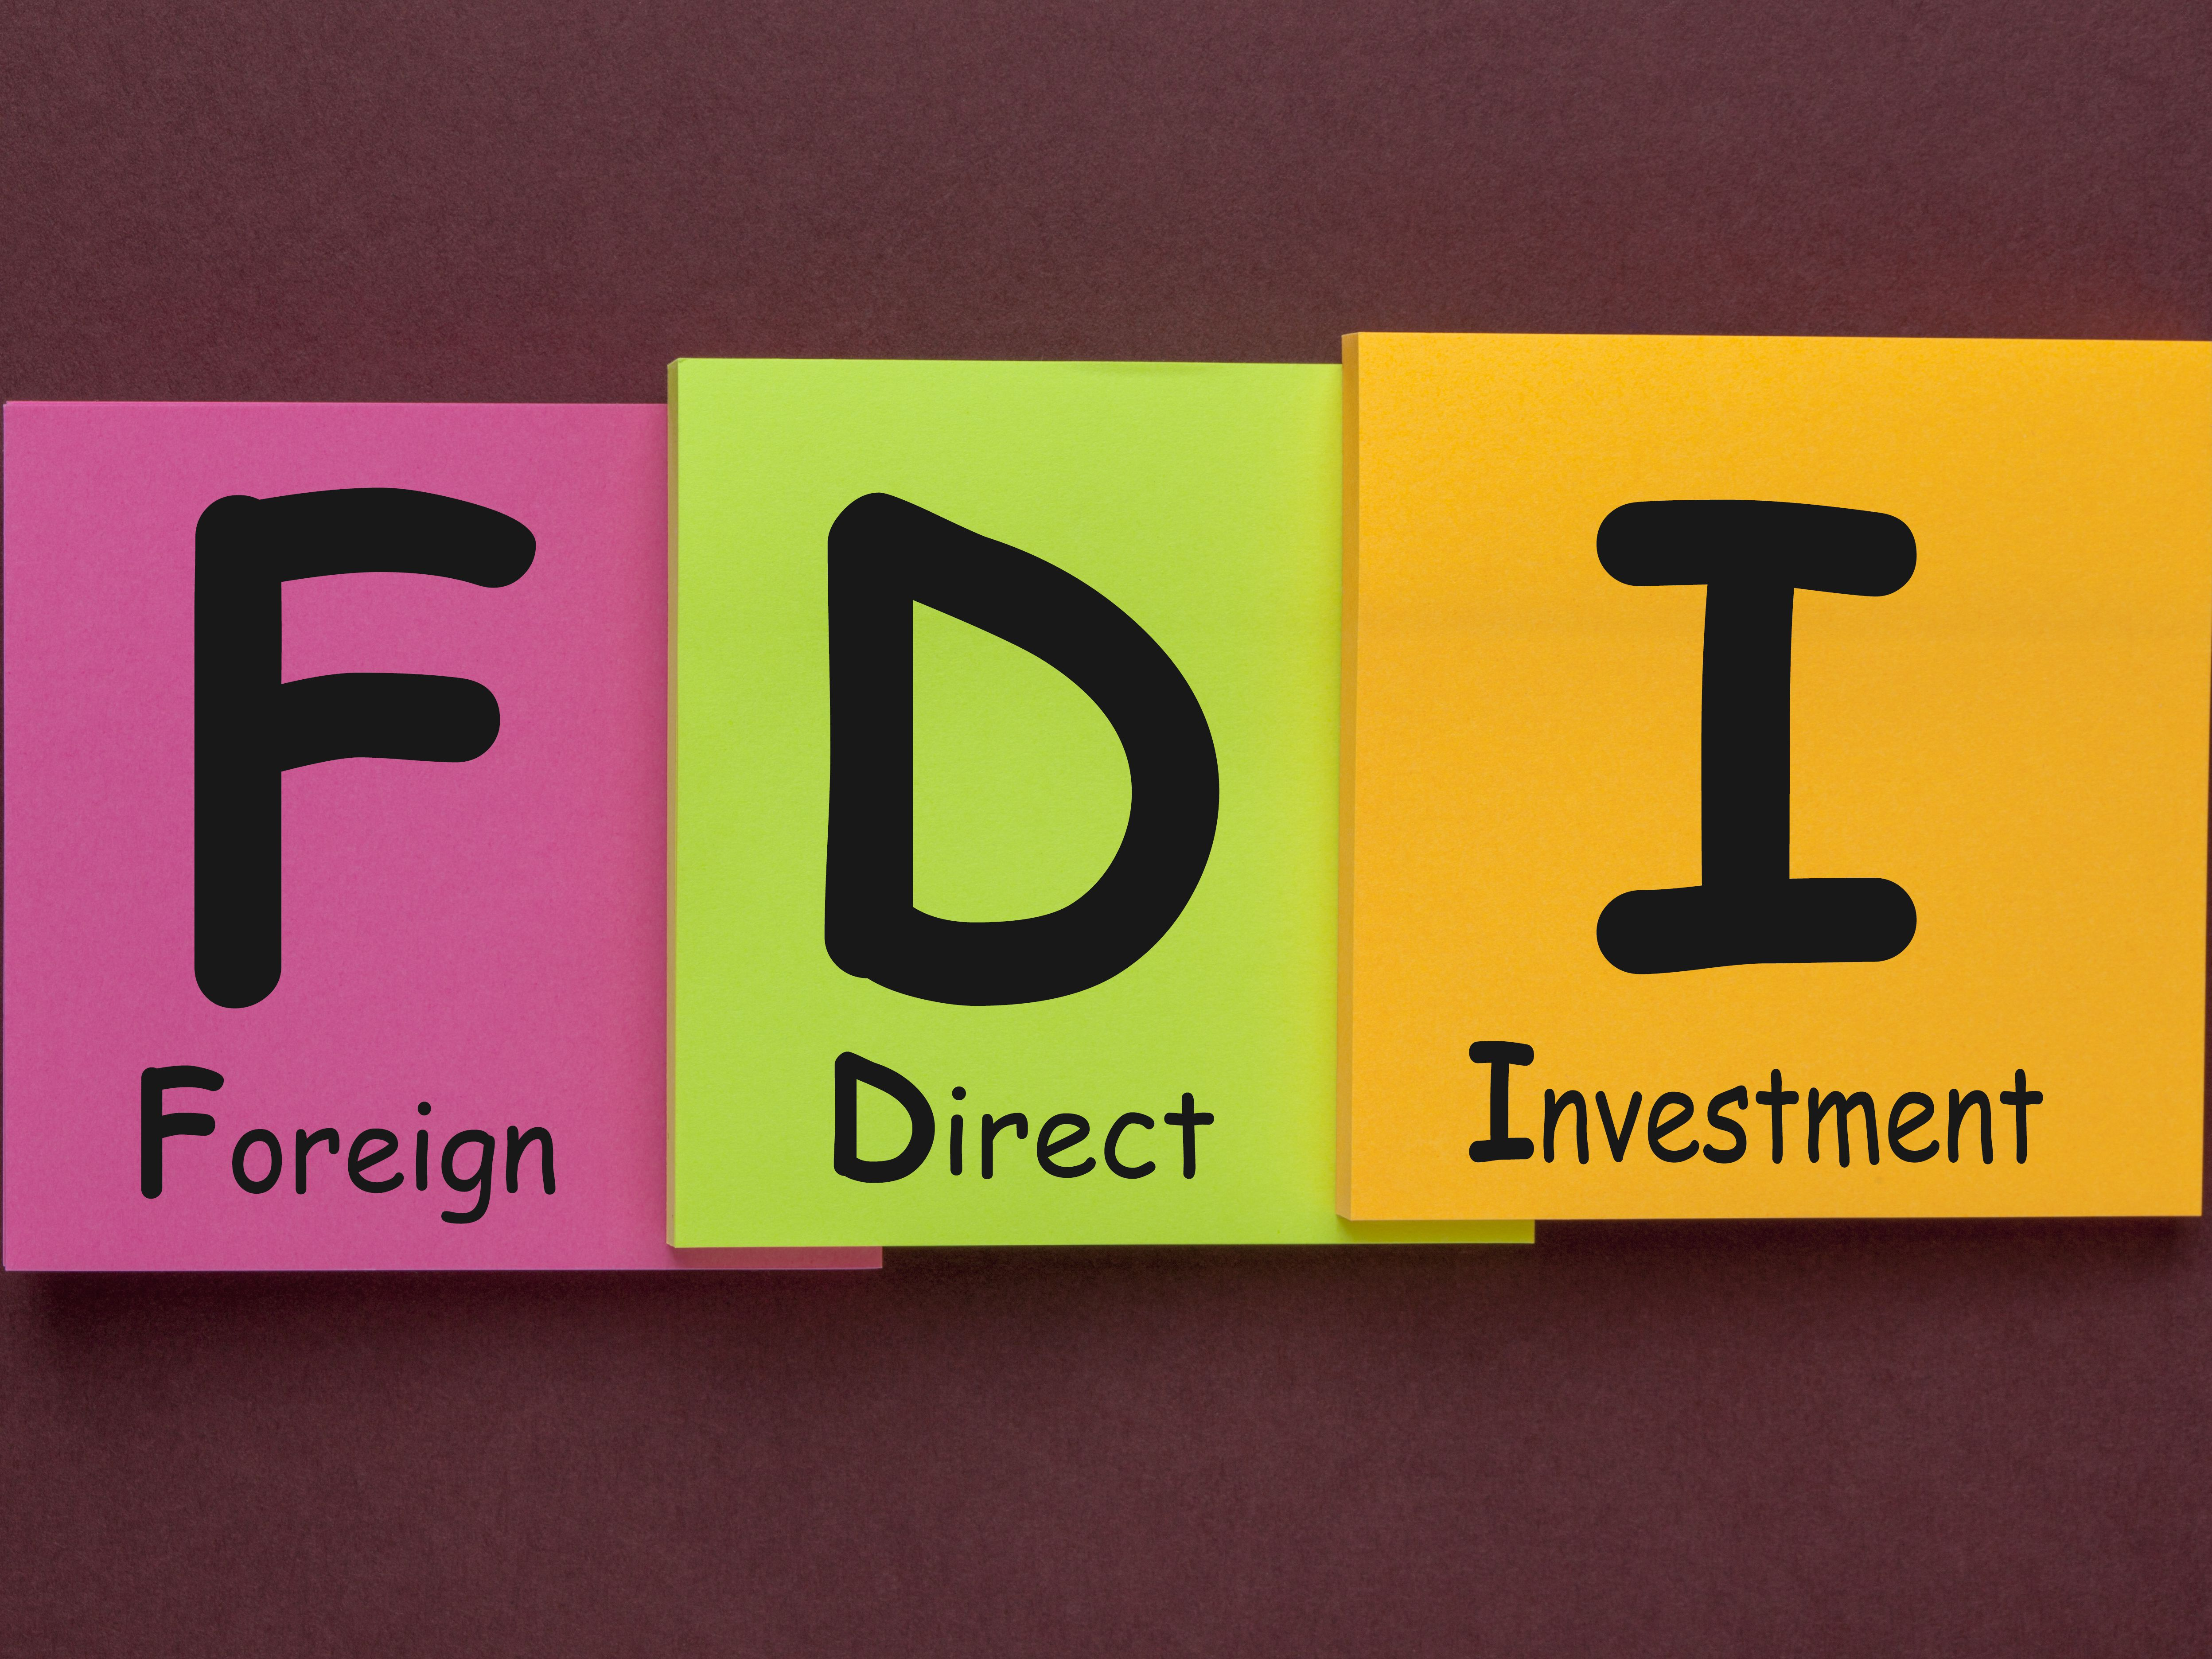 Glossary of foreign direct investment terms for kids